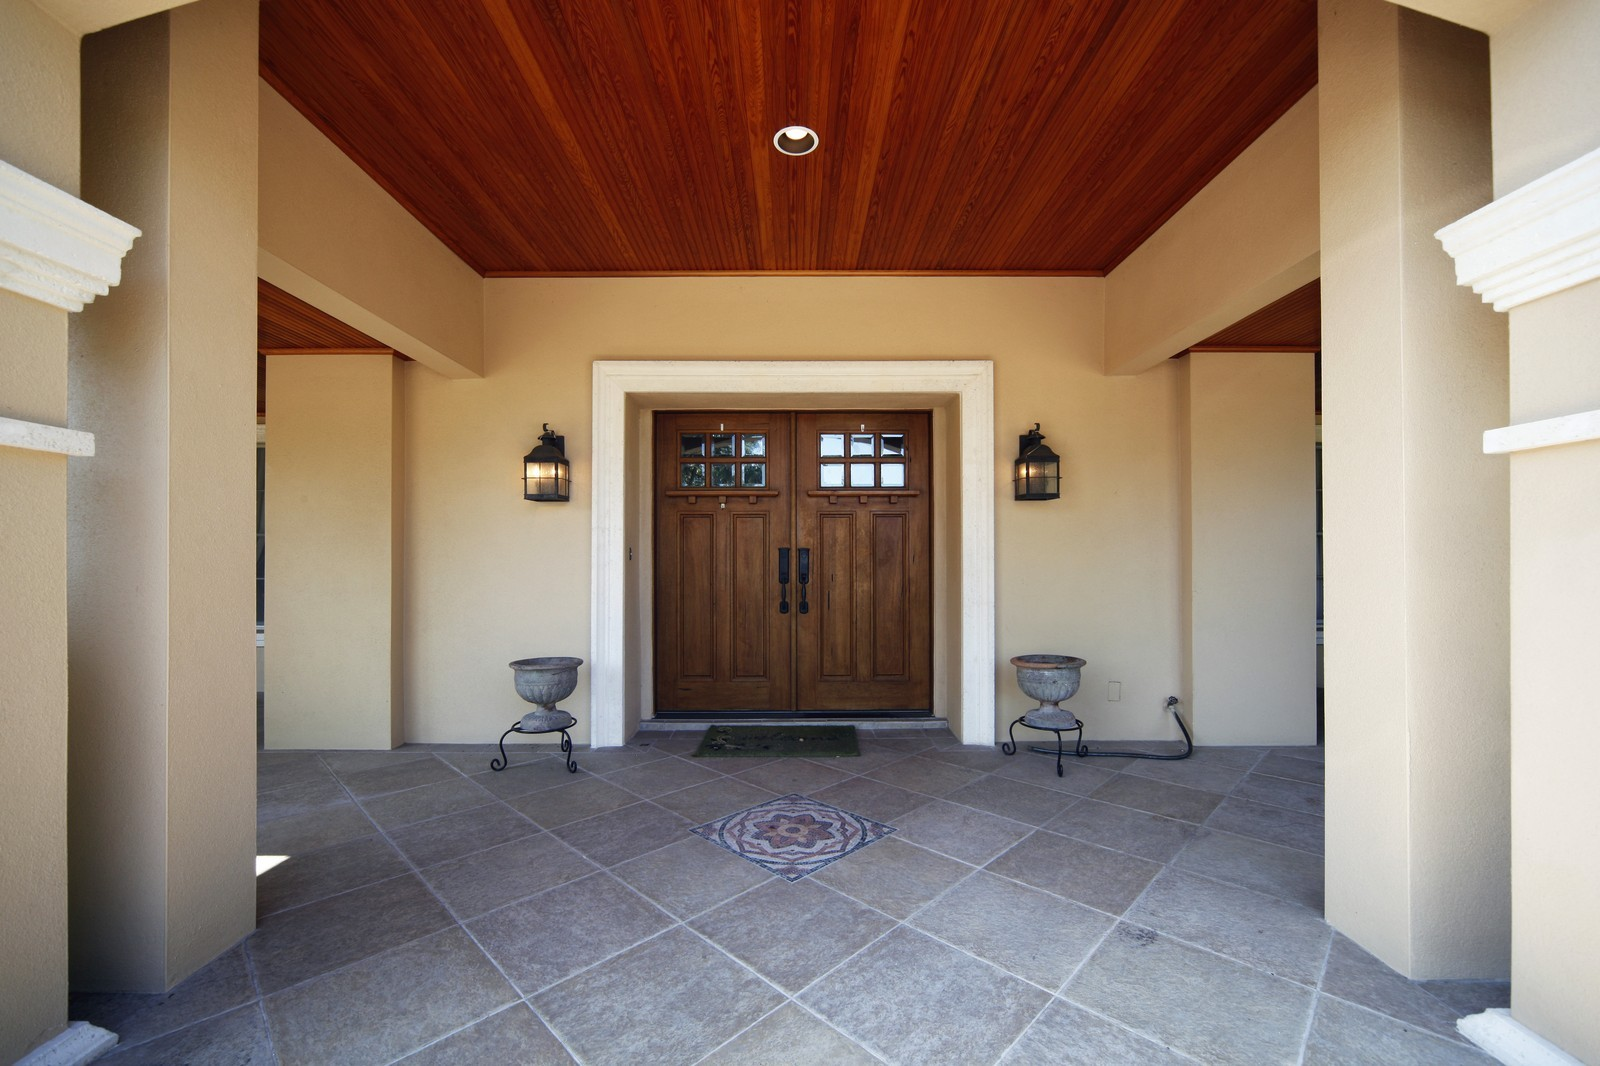 Real Estate Photography - 4920 Lyford Cay Road, Tampa, FL, 33629 - Entryway